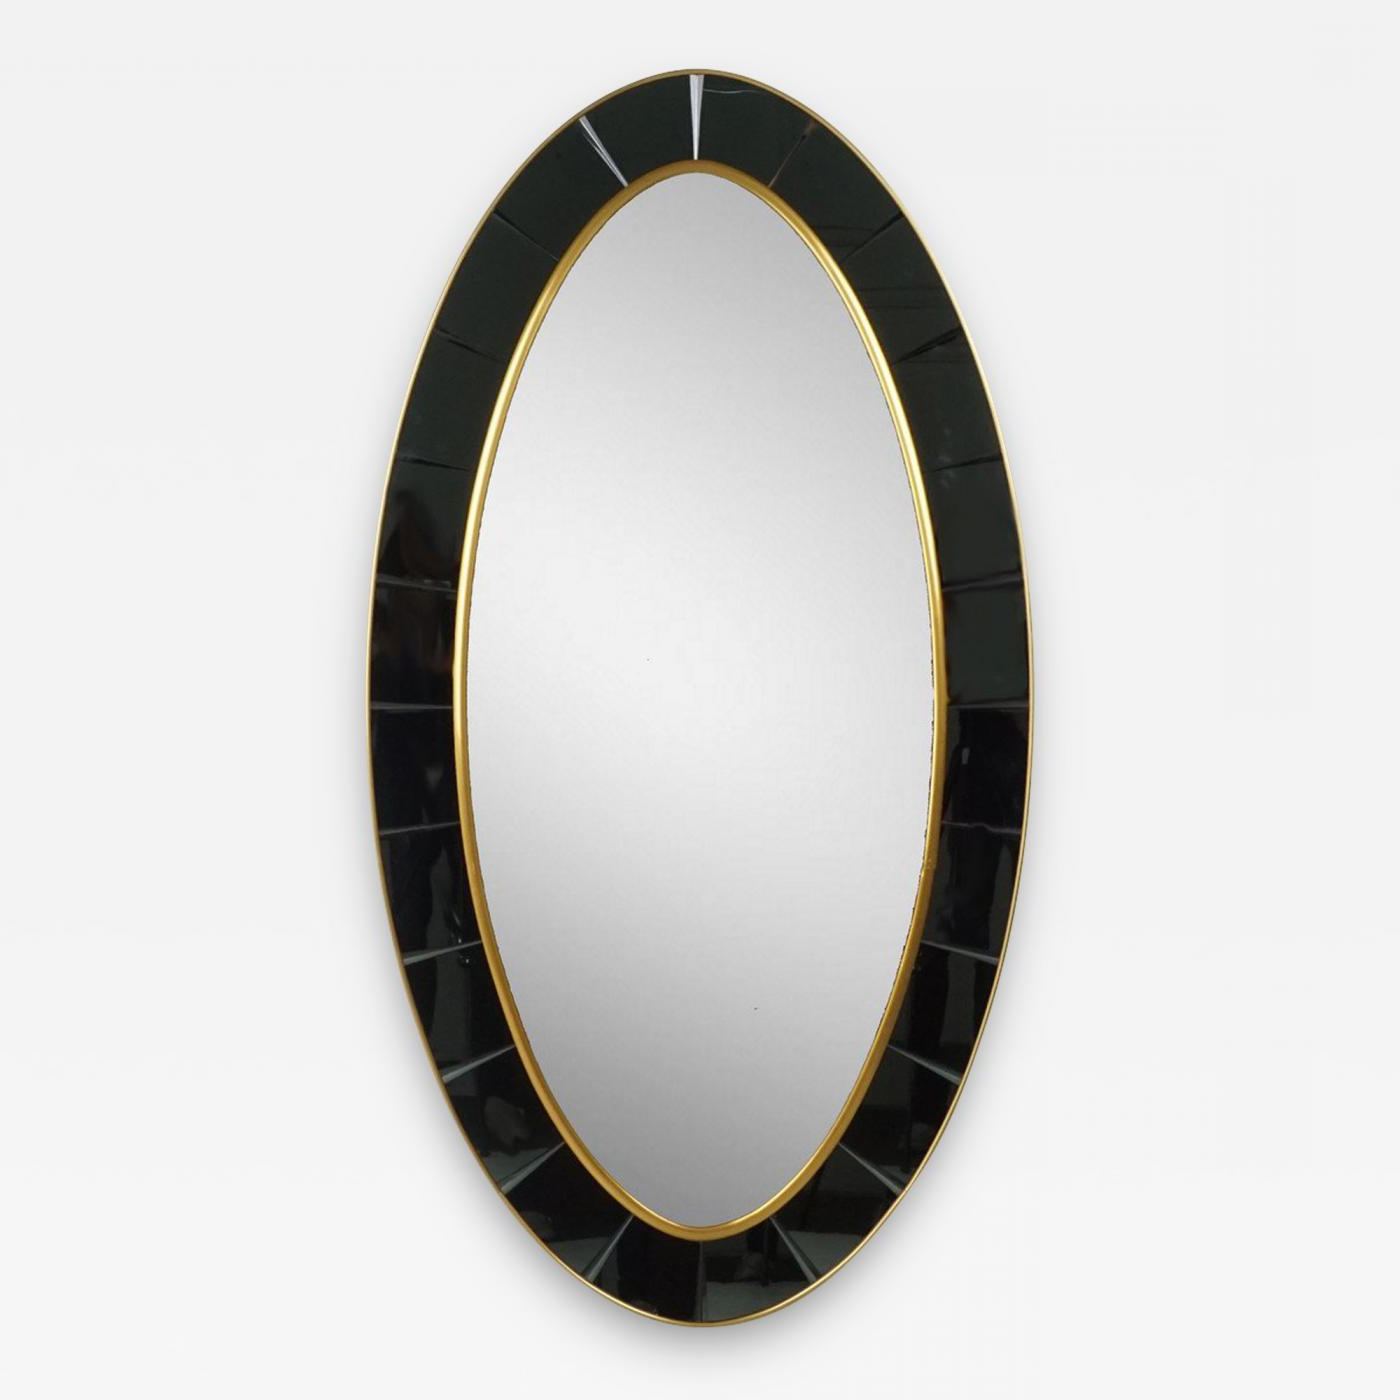 Cristal Arte – Full Length Oval Mirrorcristal Art Inside Most Current Oval Full Length Wall Mirrors (View 17 of 20)